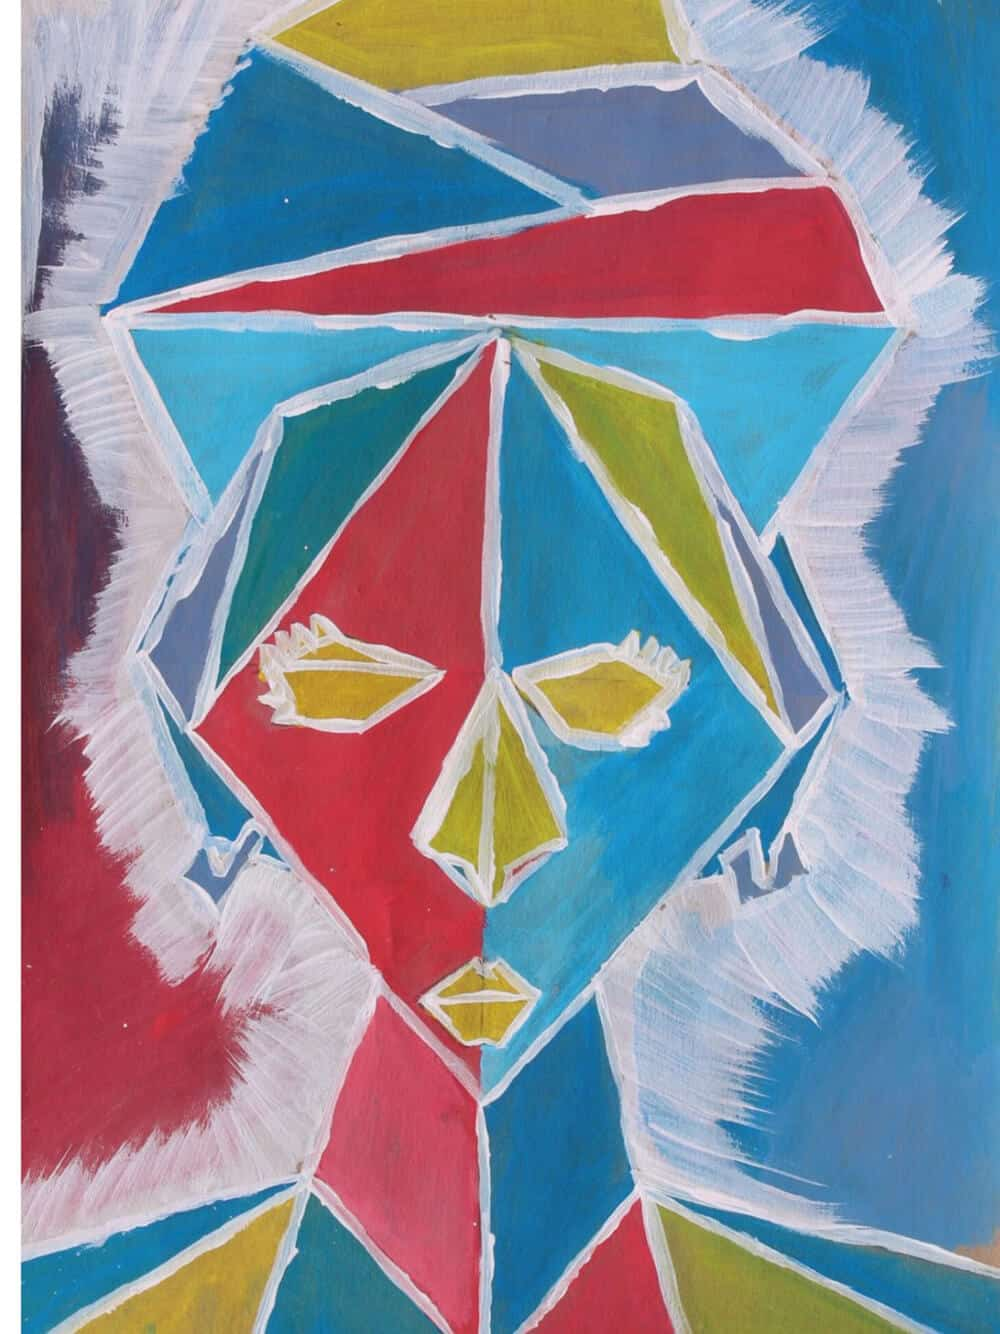 Artwork by Anthony. All artworks inspired by Odili Donald Odita & made by the children that form part of the Lalela Project curriculum. Courtesy of the Lalela Project.